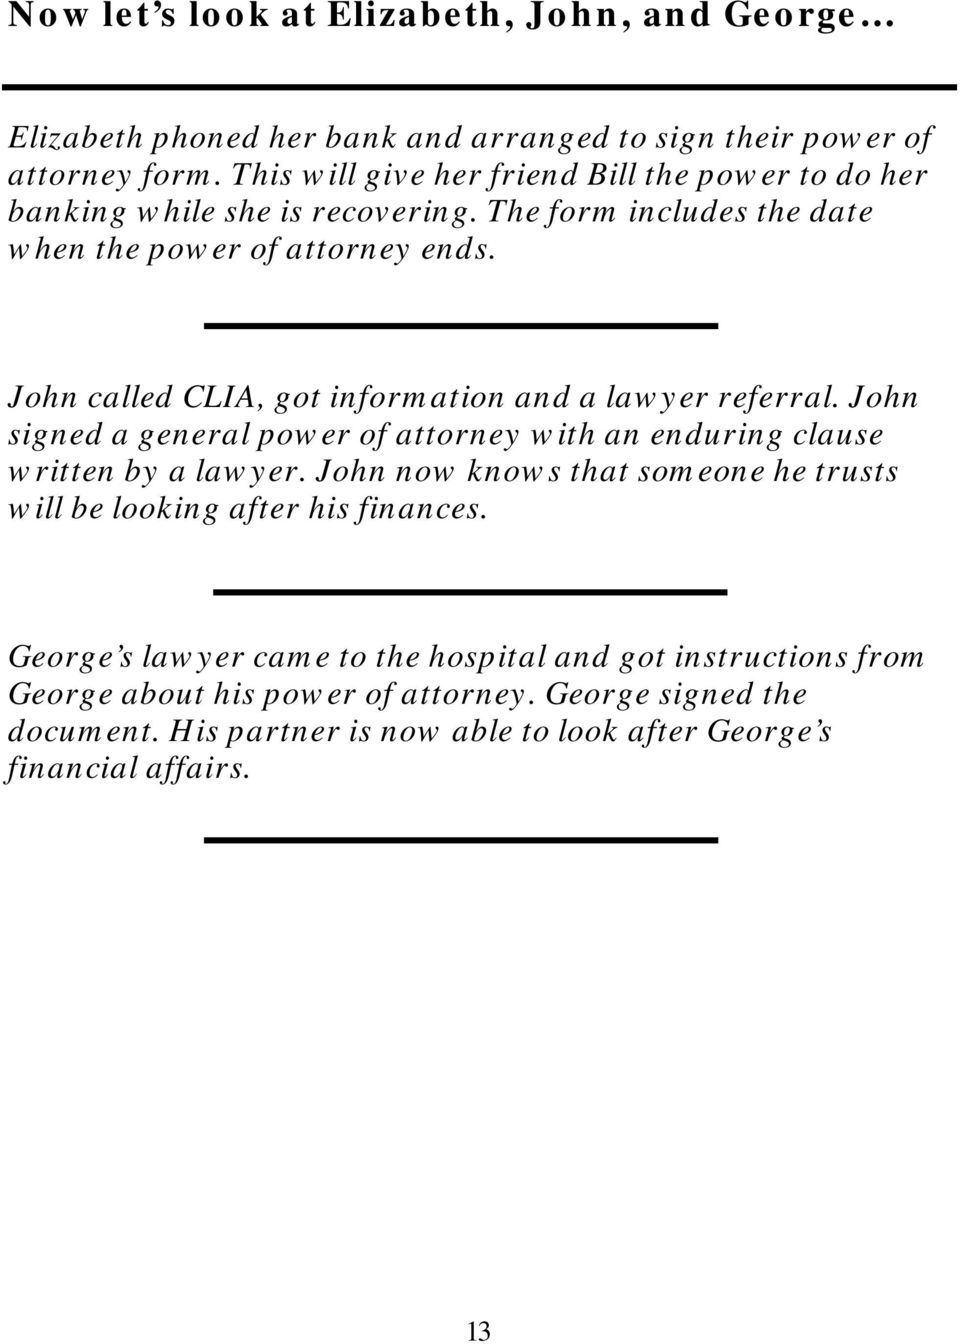 John called CLIA, got information and a lawyer referral. John signed a general power of attorney with an enduring clause written by a lawyer.